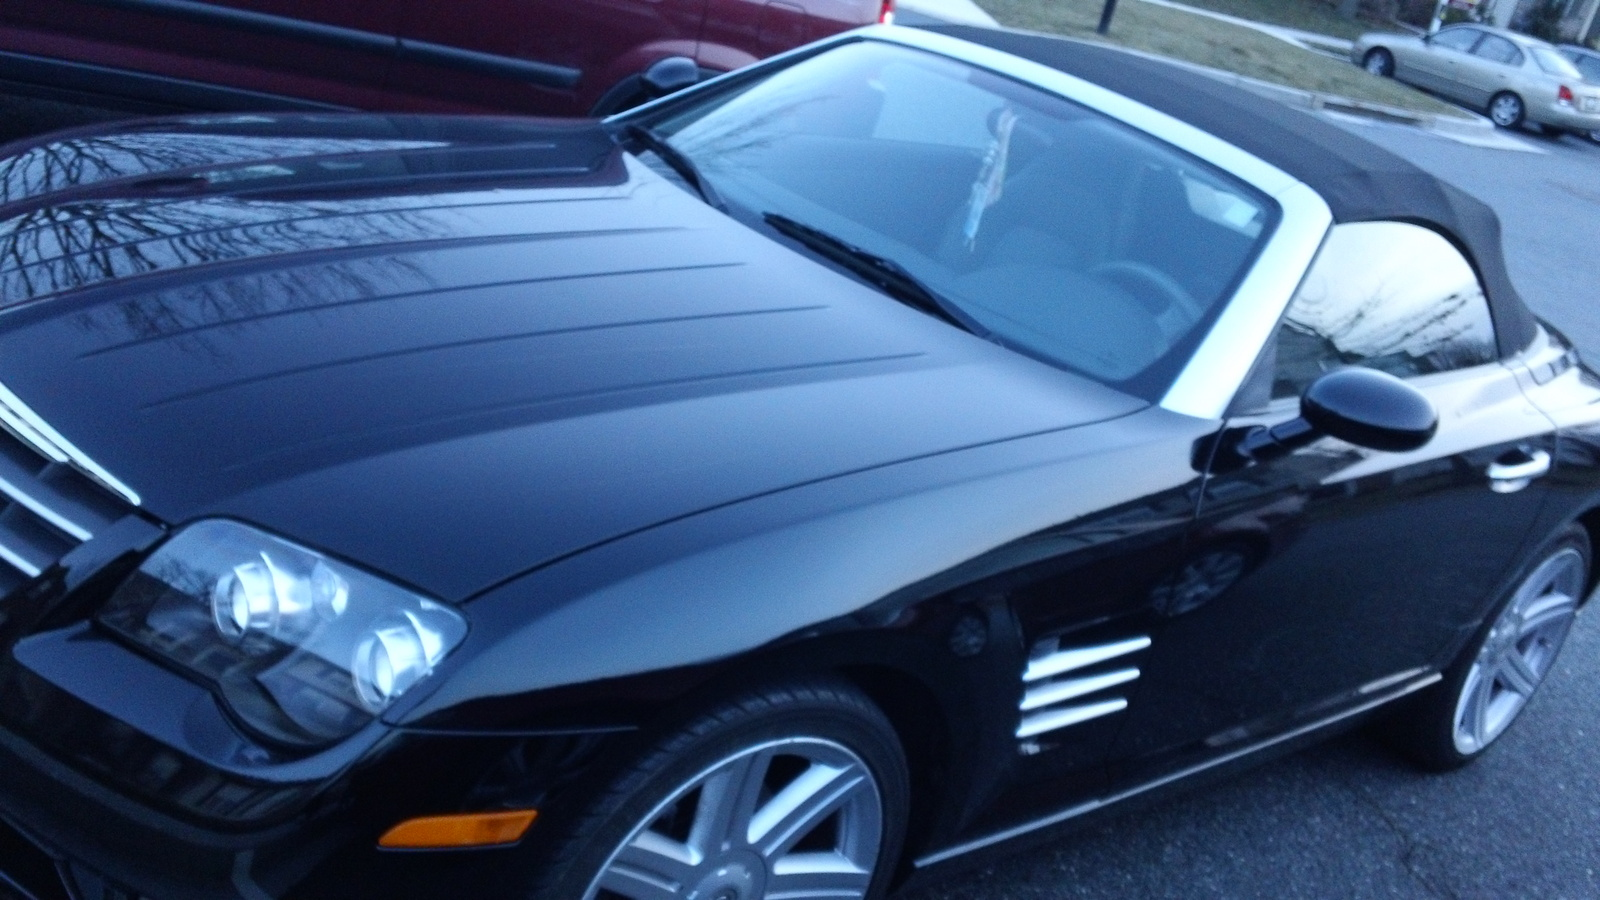 Used Chrysler Crossfire For Sale Baltimore, MD - CarGurus